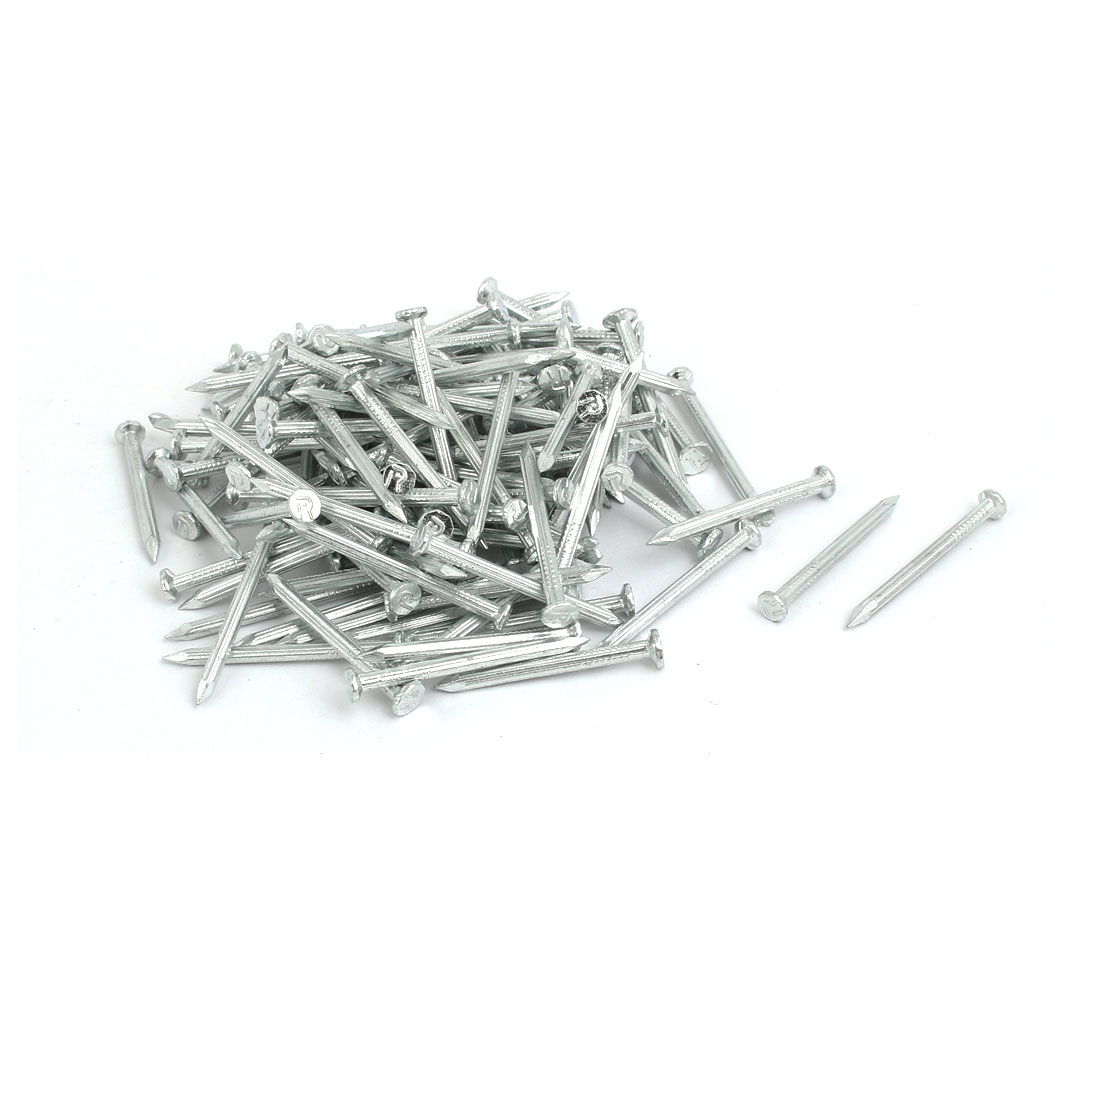 1.5-inch Length Carbon Steel Point Tip Wall Cement Nails Silver Tone 200pcs